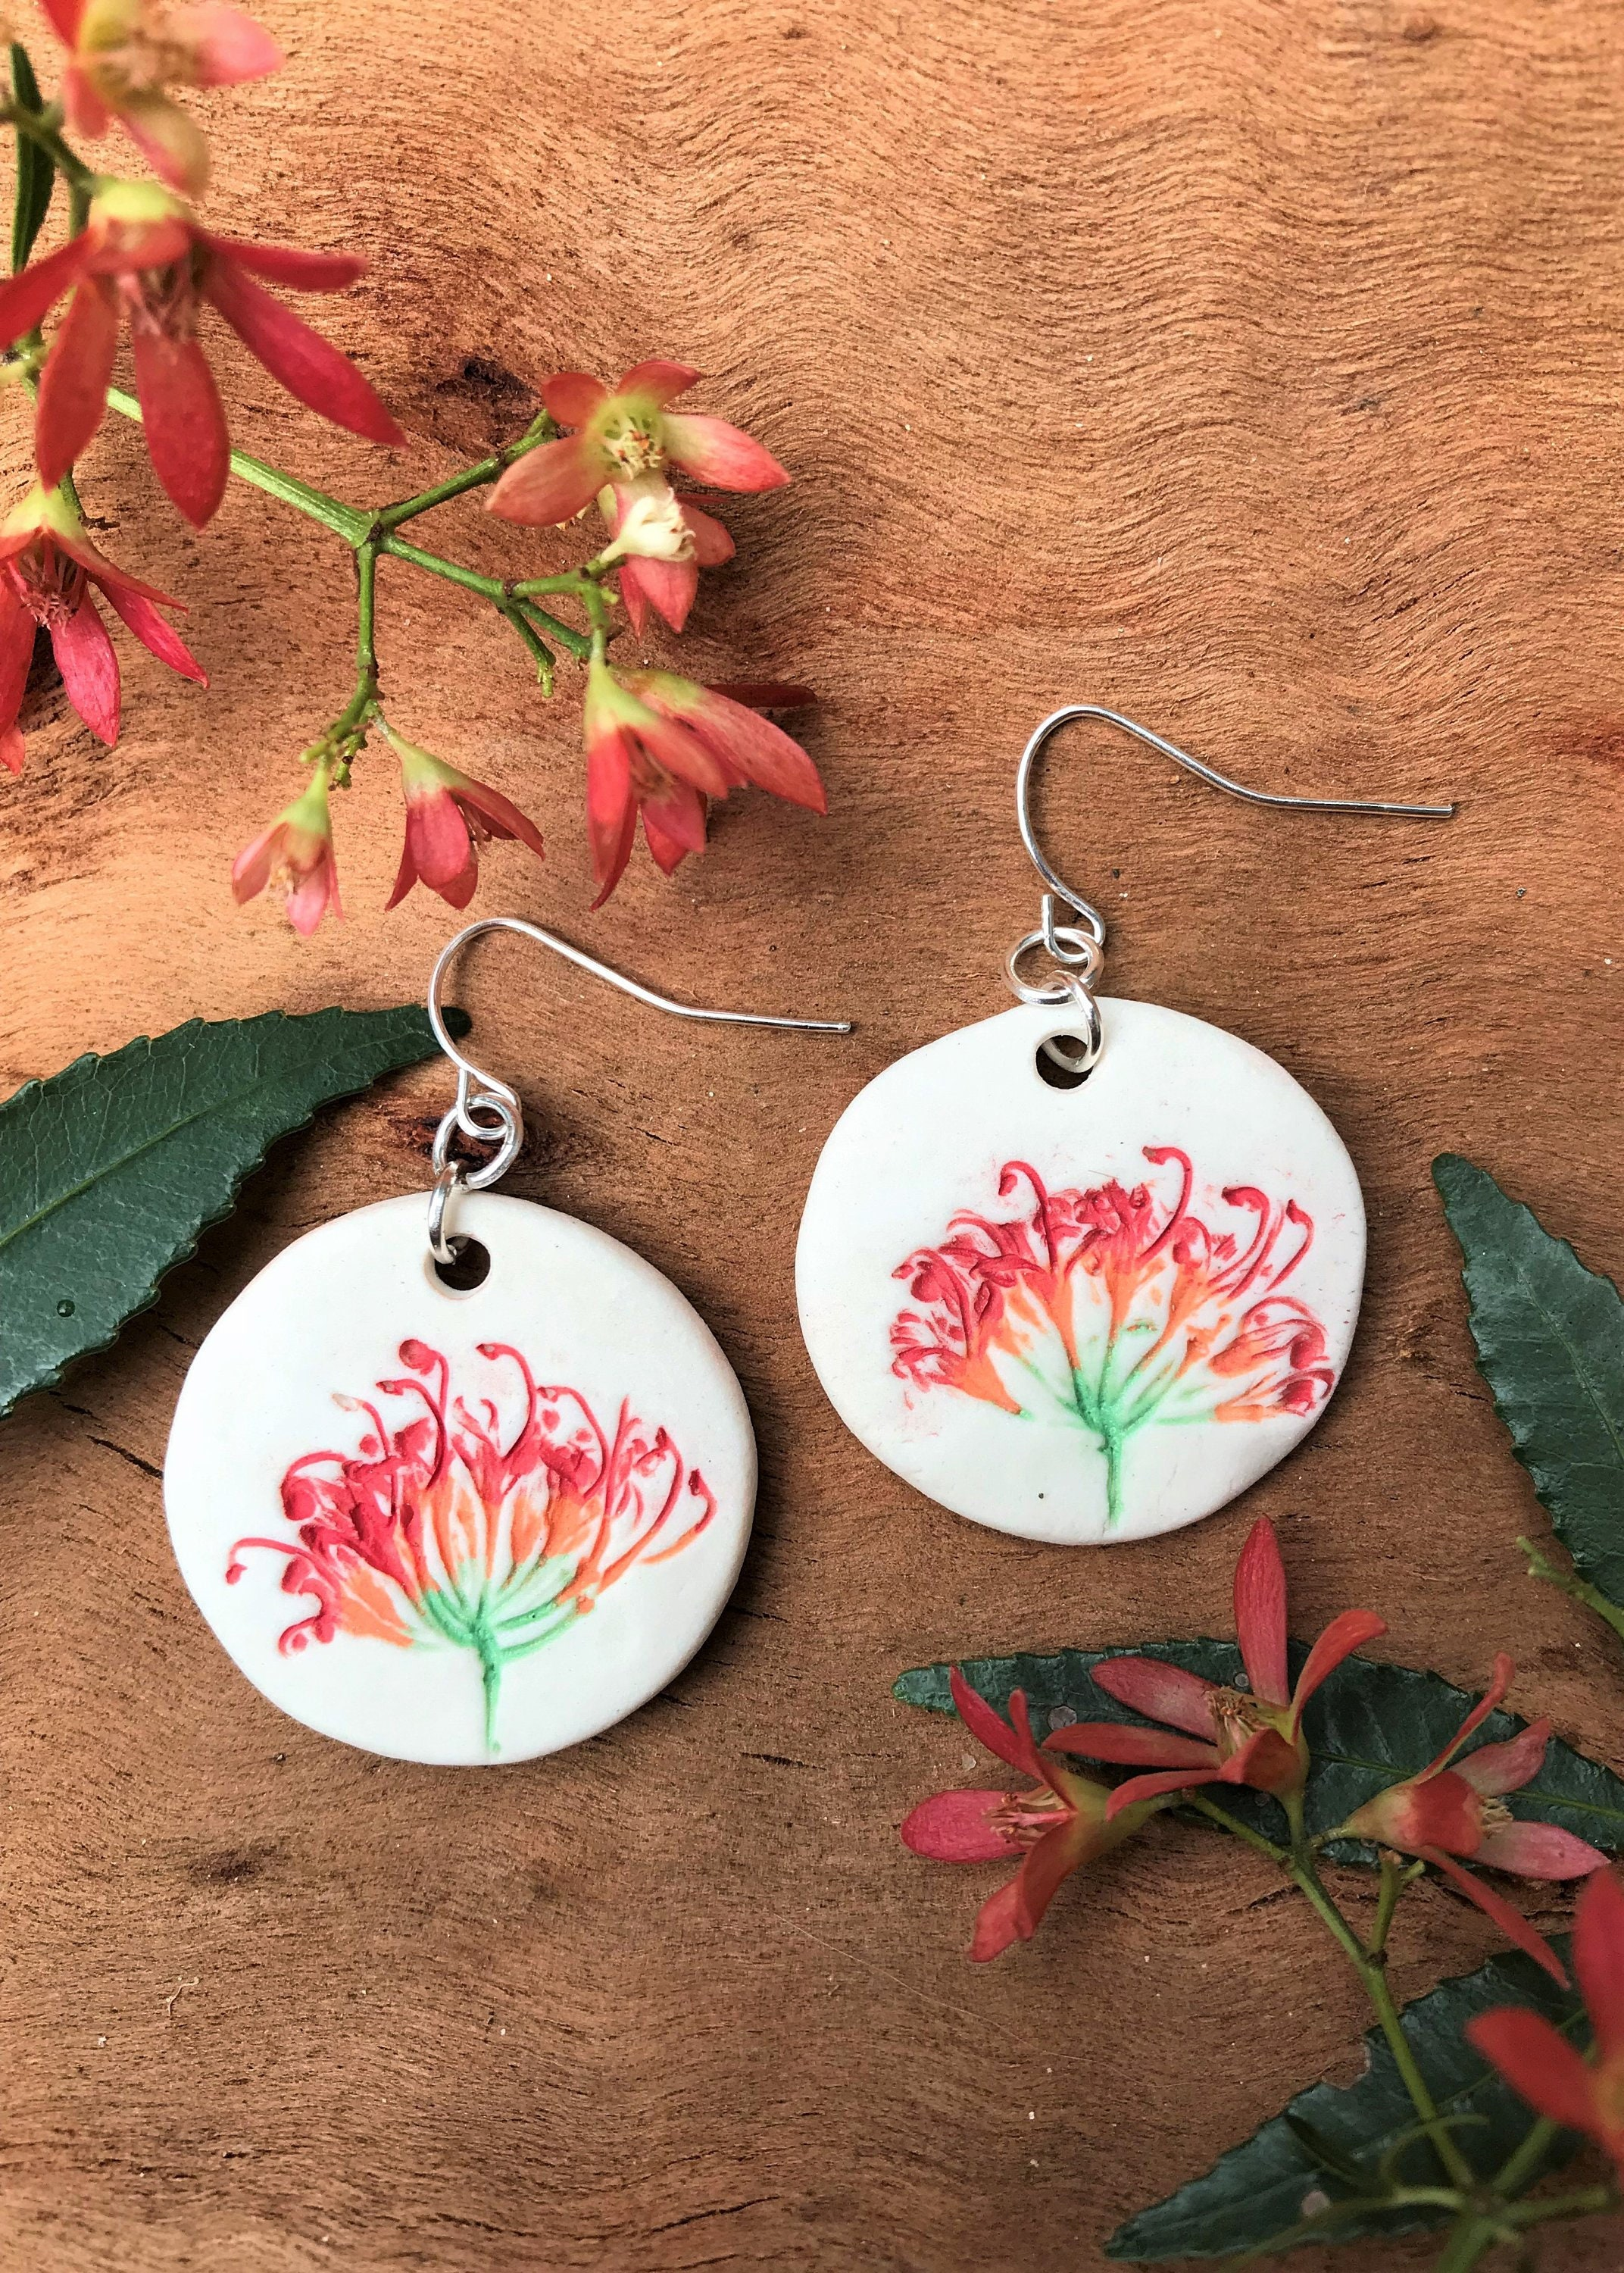 Grevillea flower Colourful Porcelain drop earrings with Grevillea flower  imprint. Loving gift Australian earrings. DECG